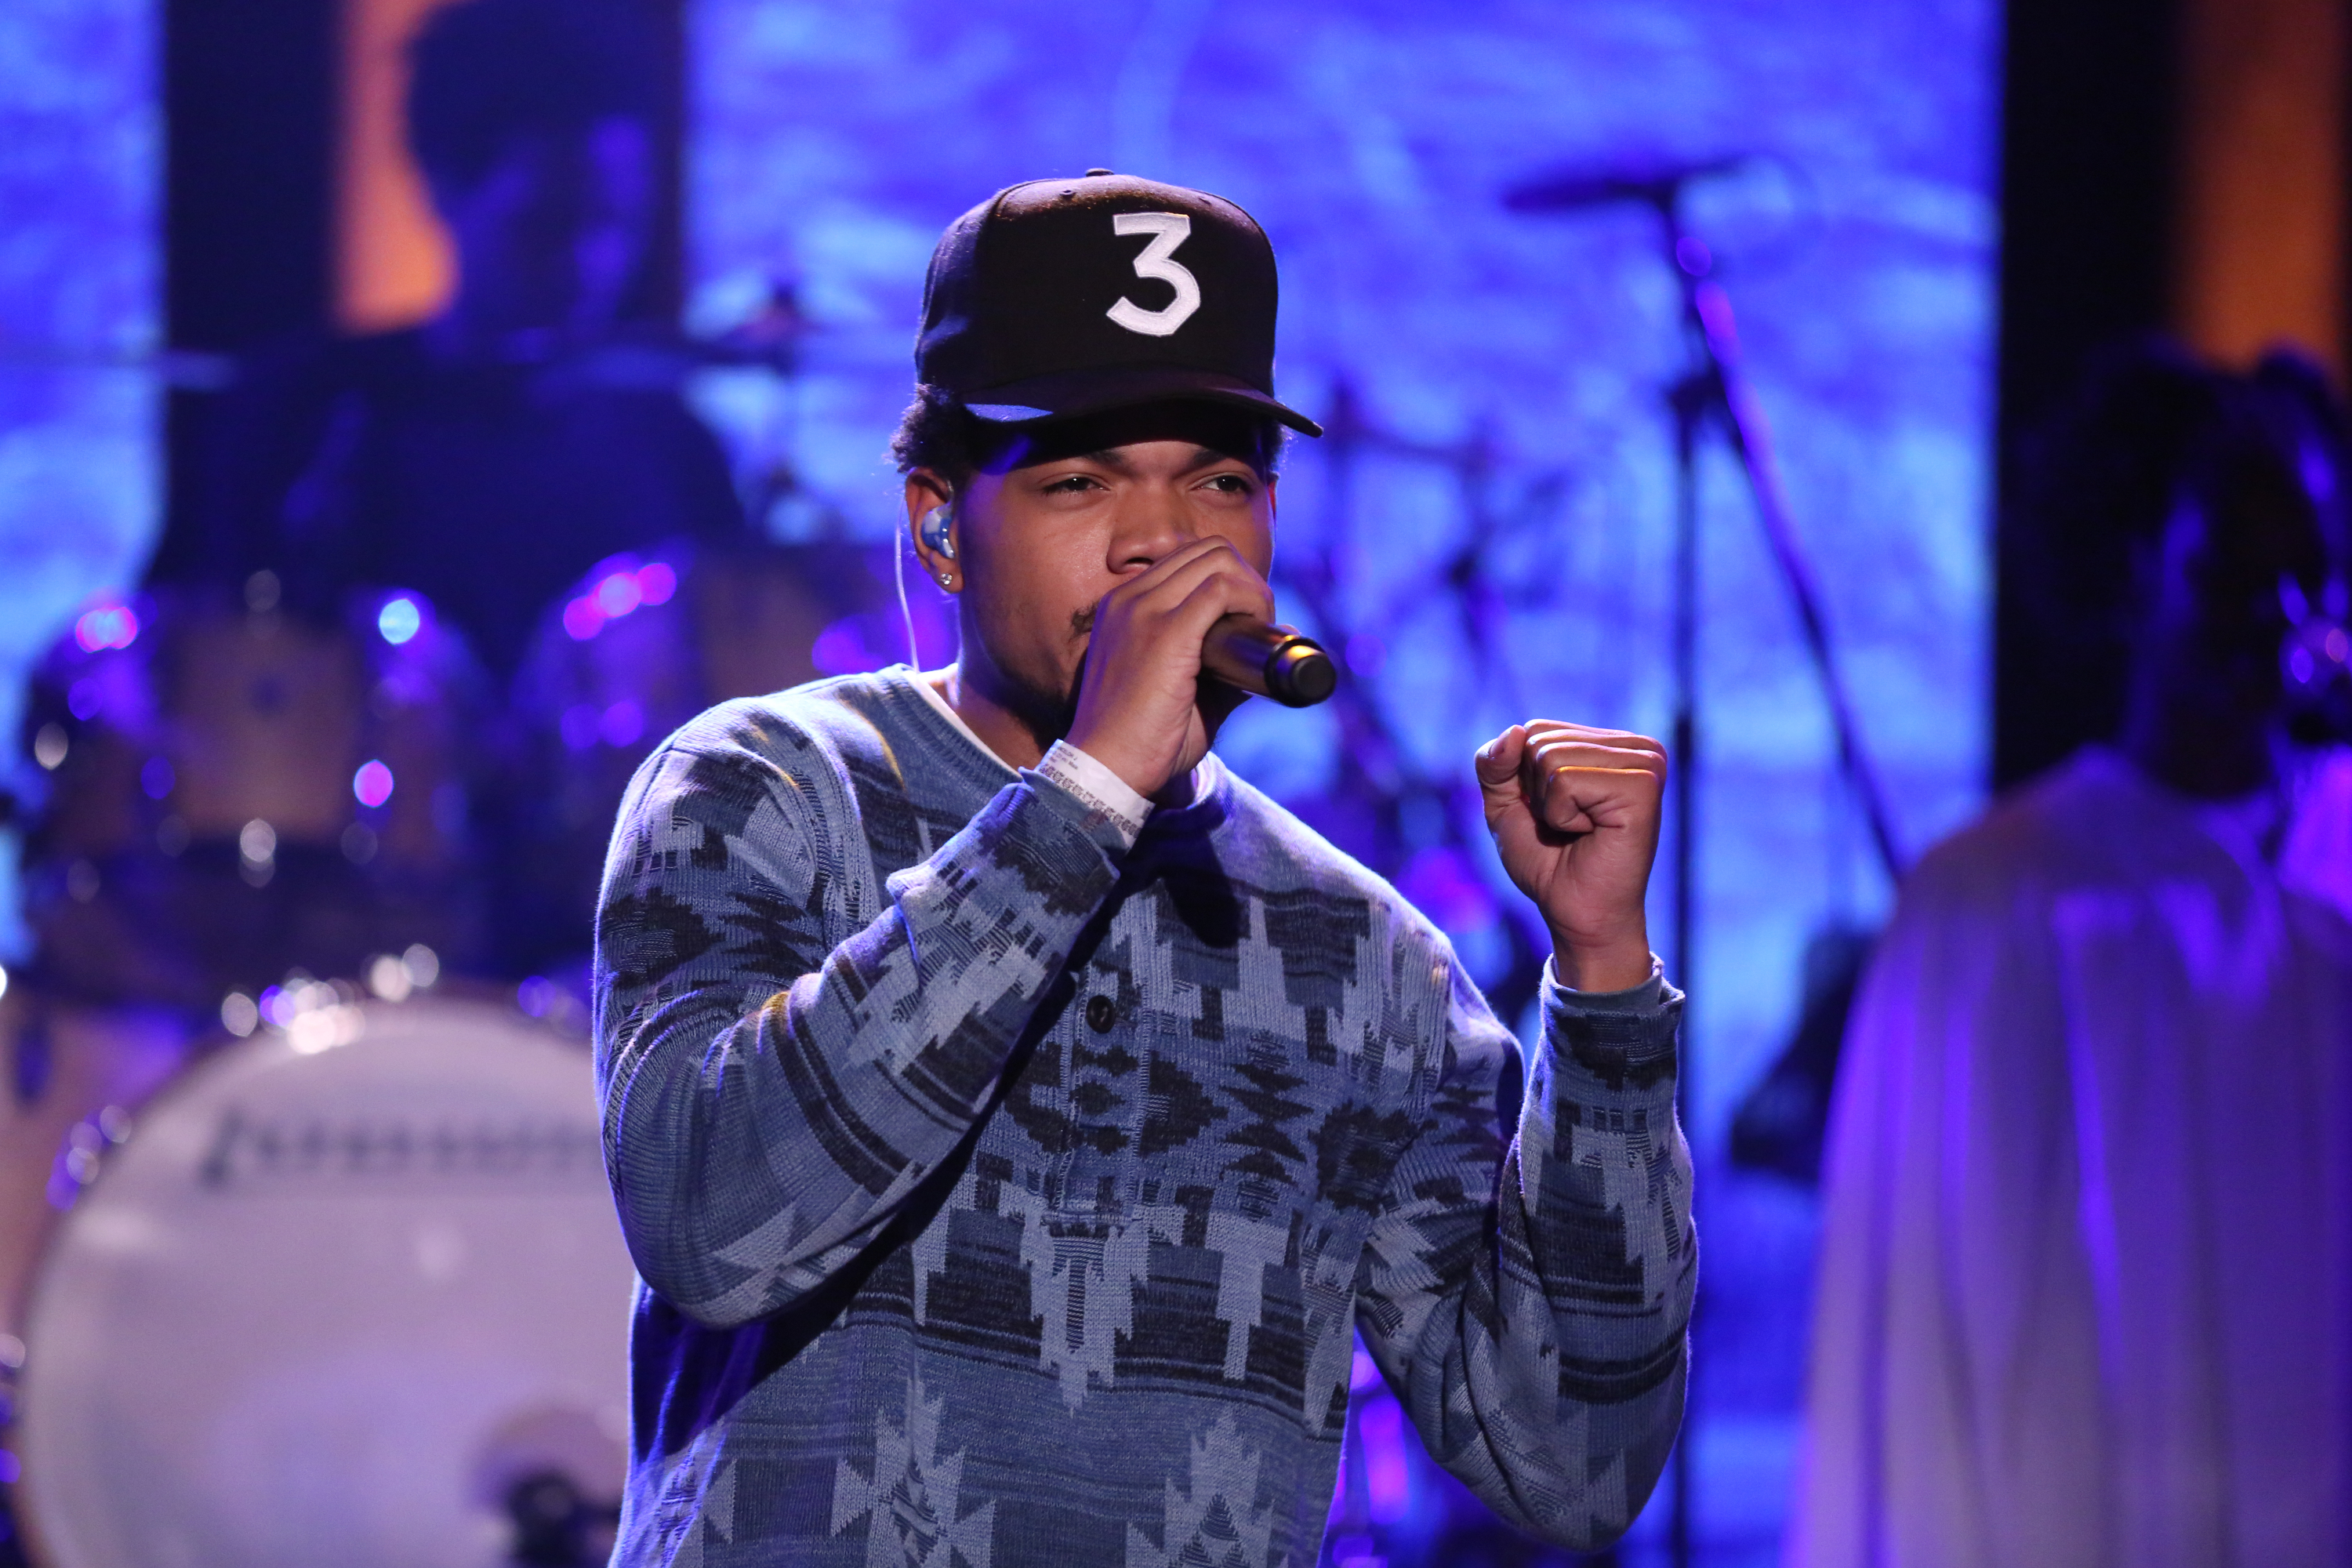 THE TONIGHT SHOW STARRING JIMMY FALLON -- Episode 0465 -- Pictured: Musical guest Chance the Rapper performs with Byron Cage and Camilla Woods on May 5, 2016 --